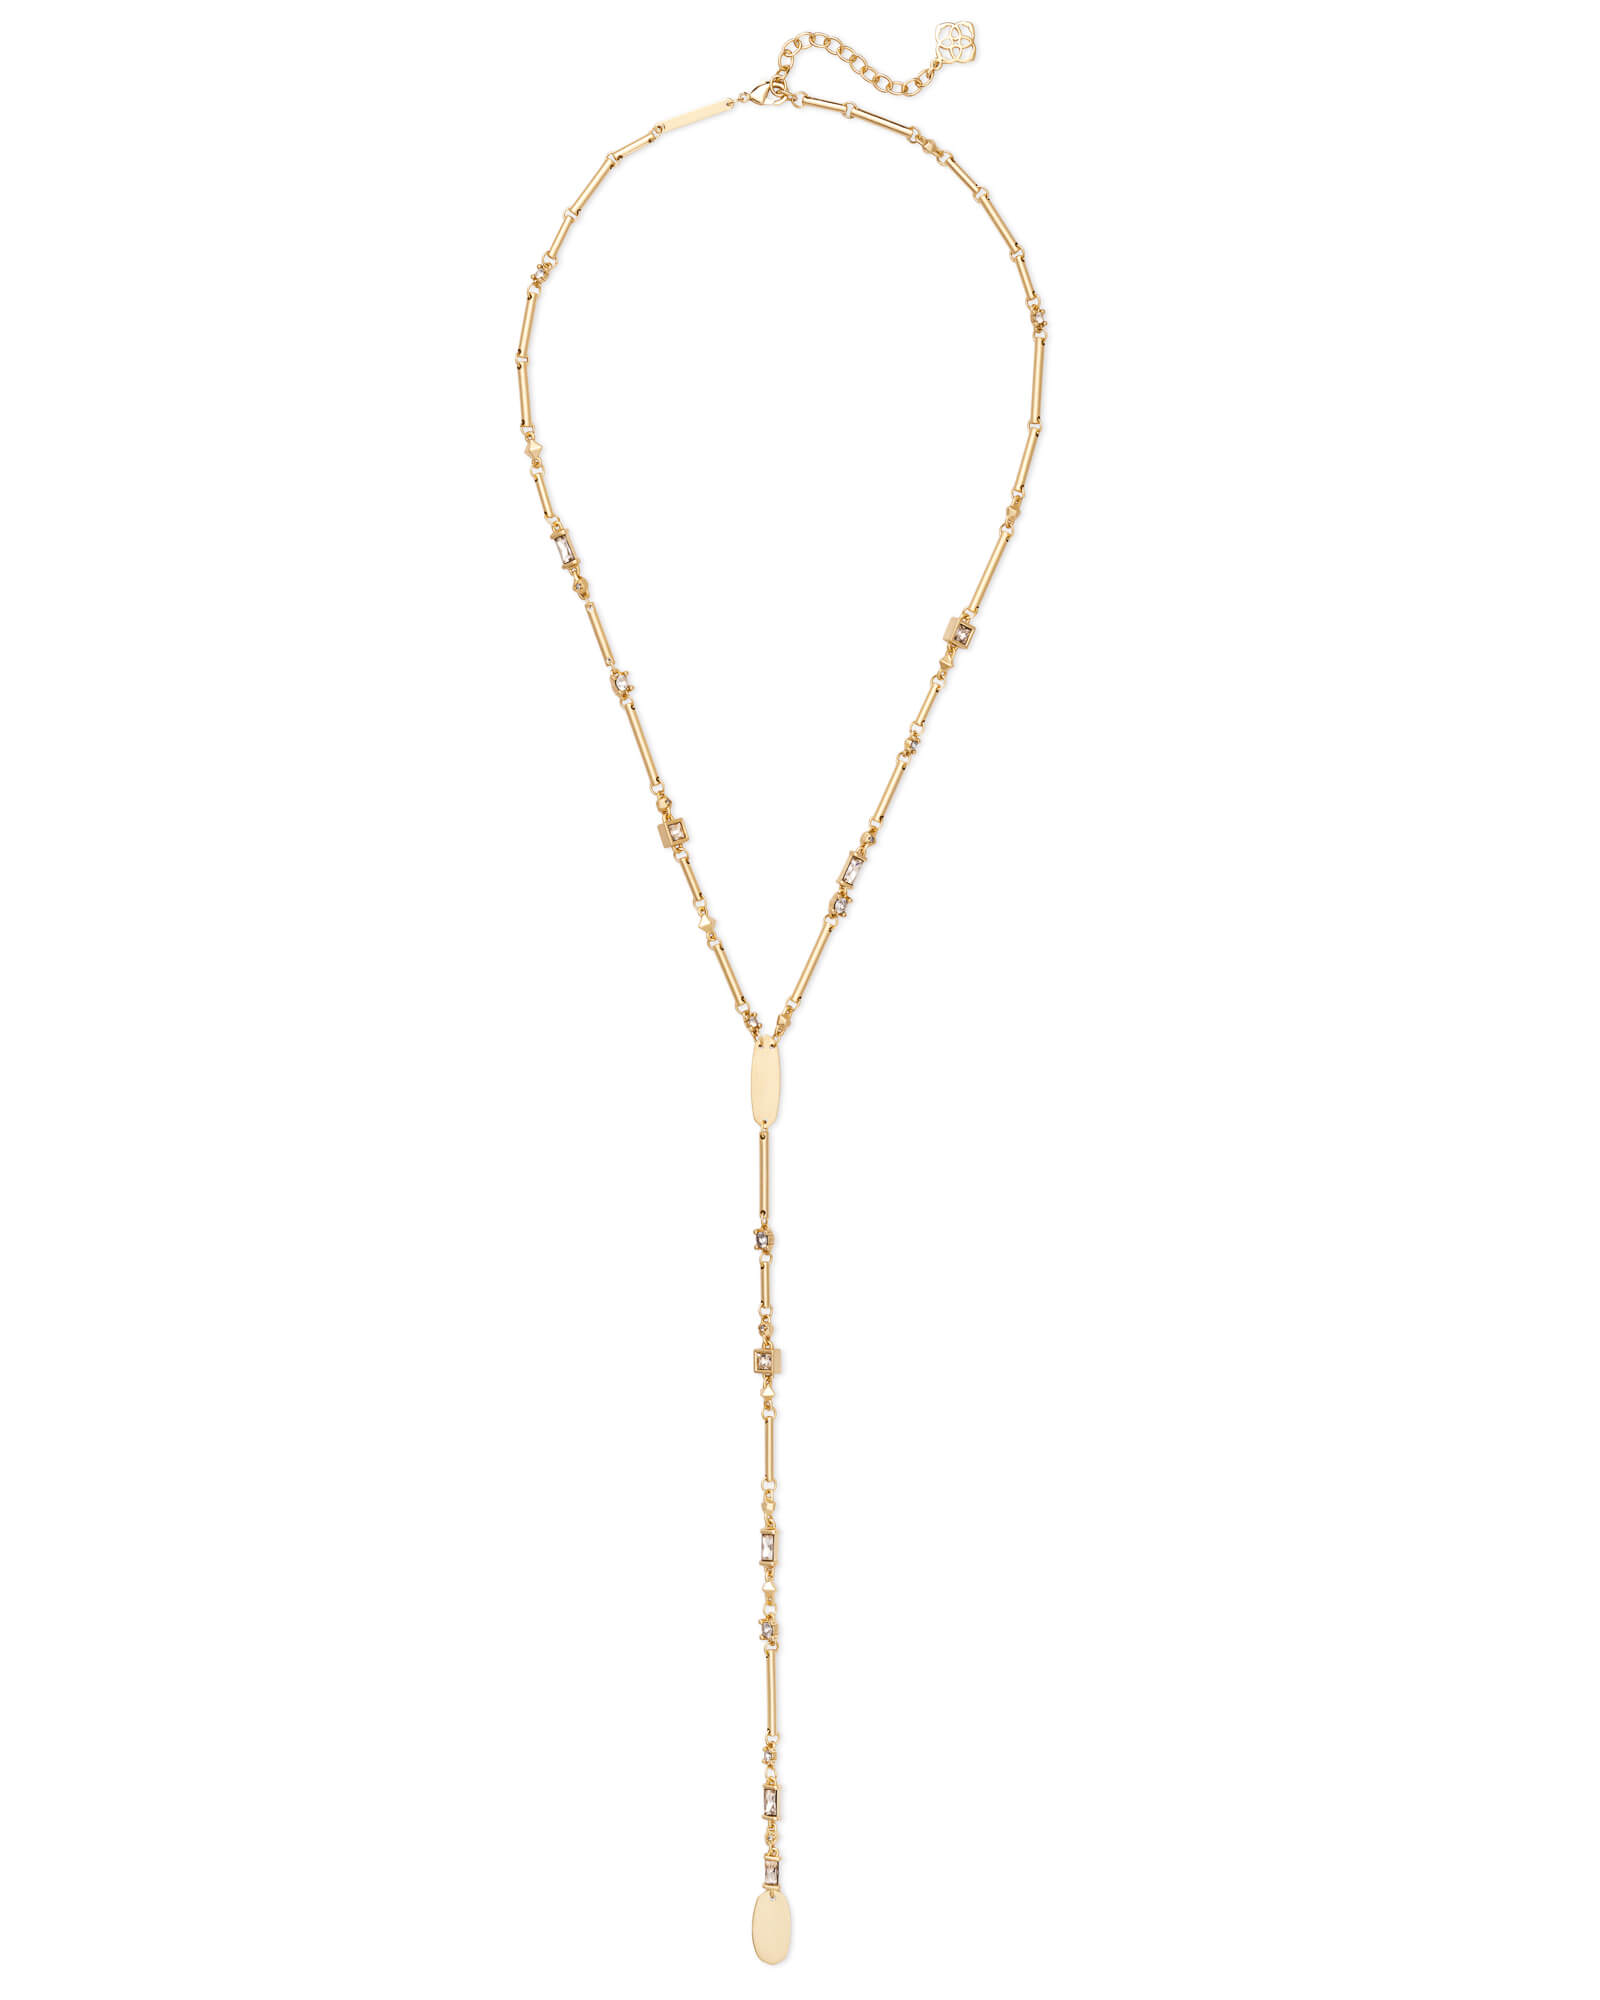 Crowley Gold Y Necklace in Smoky Mix